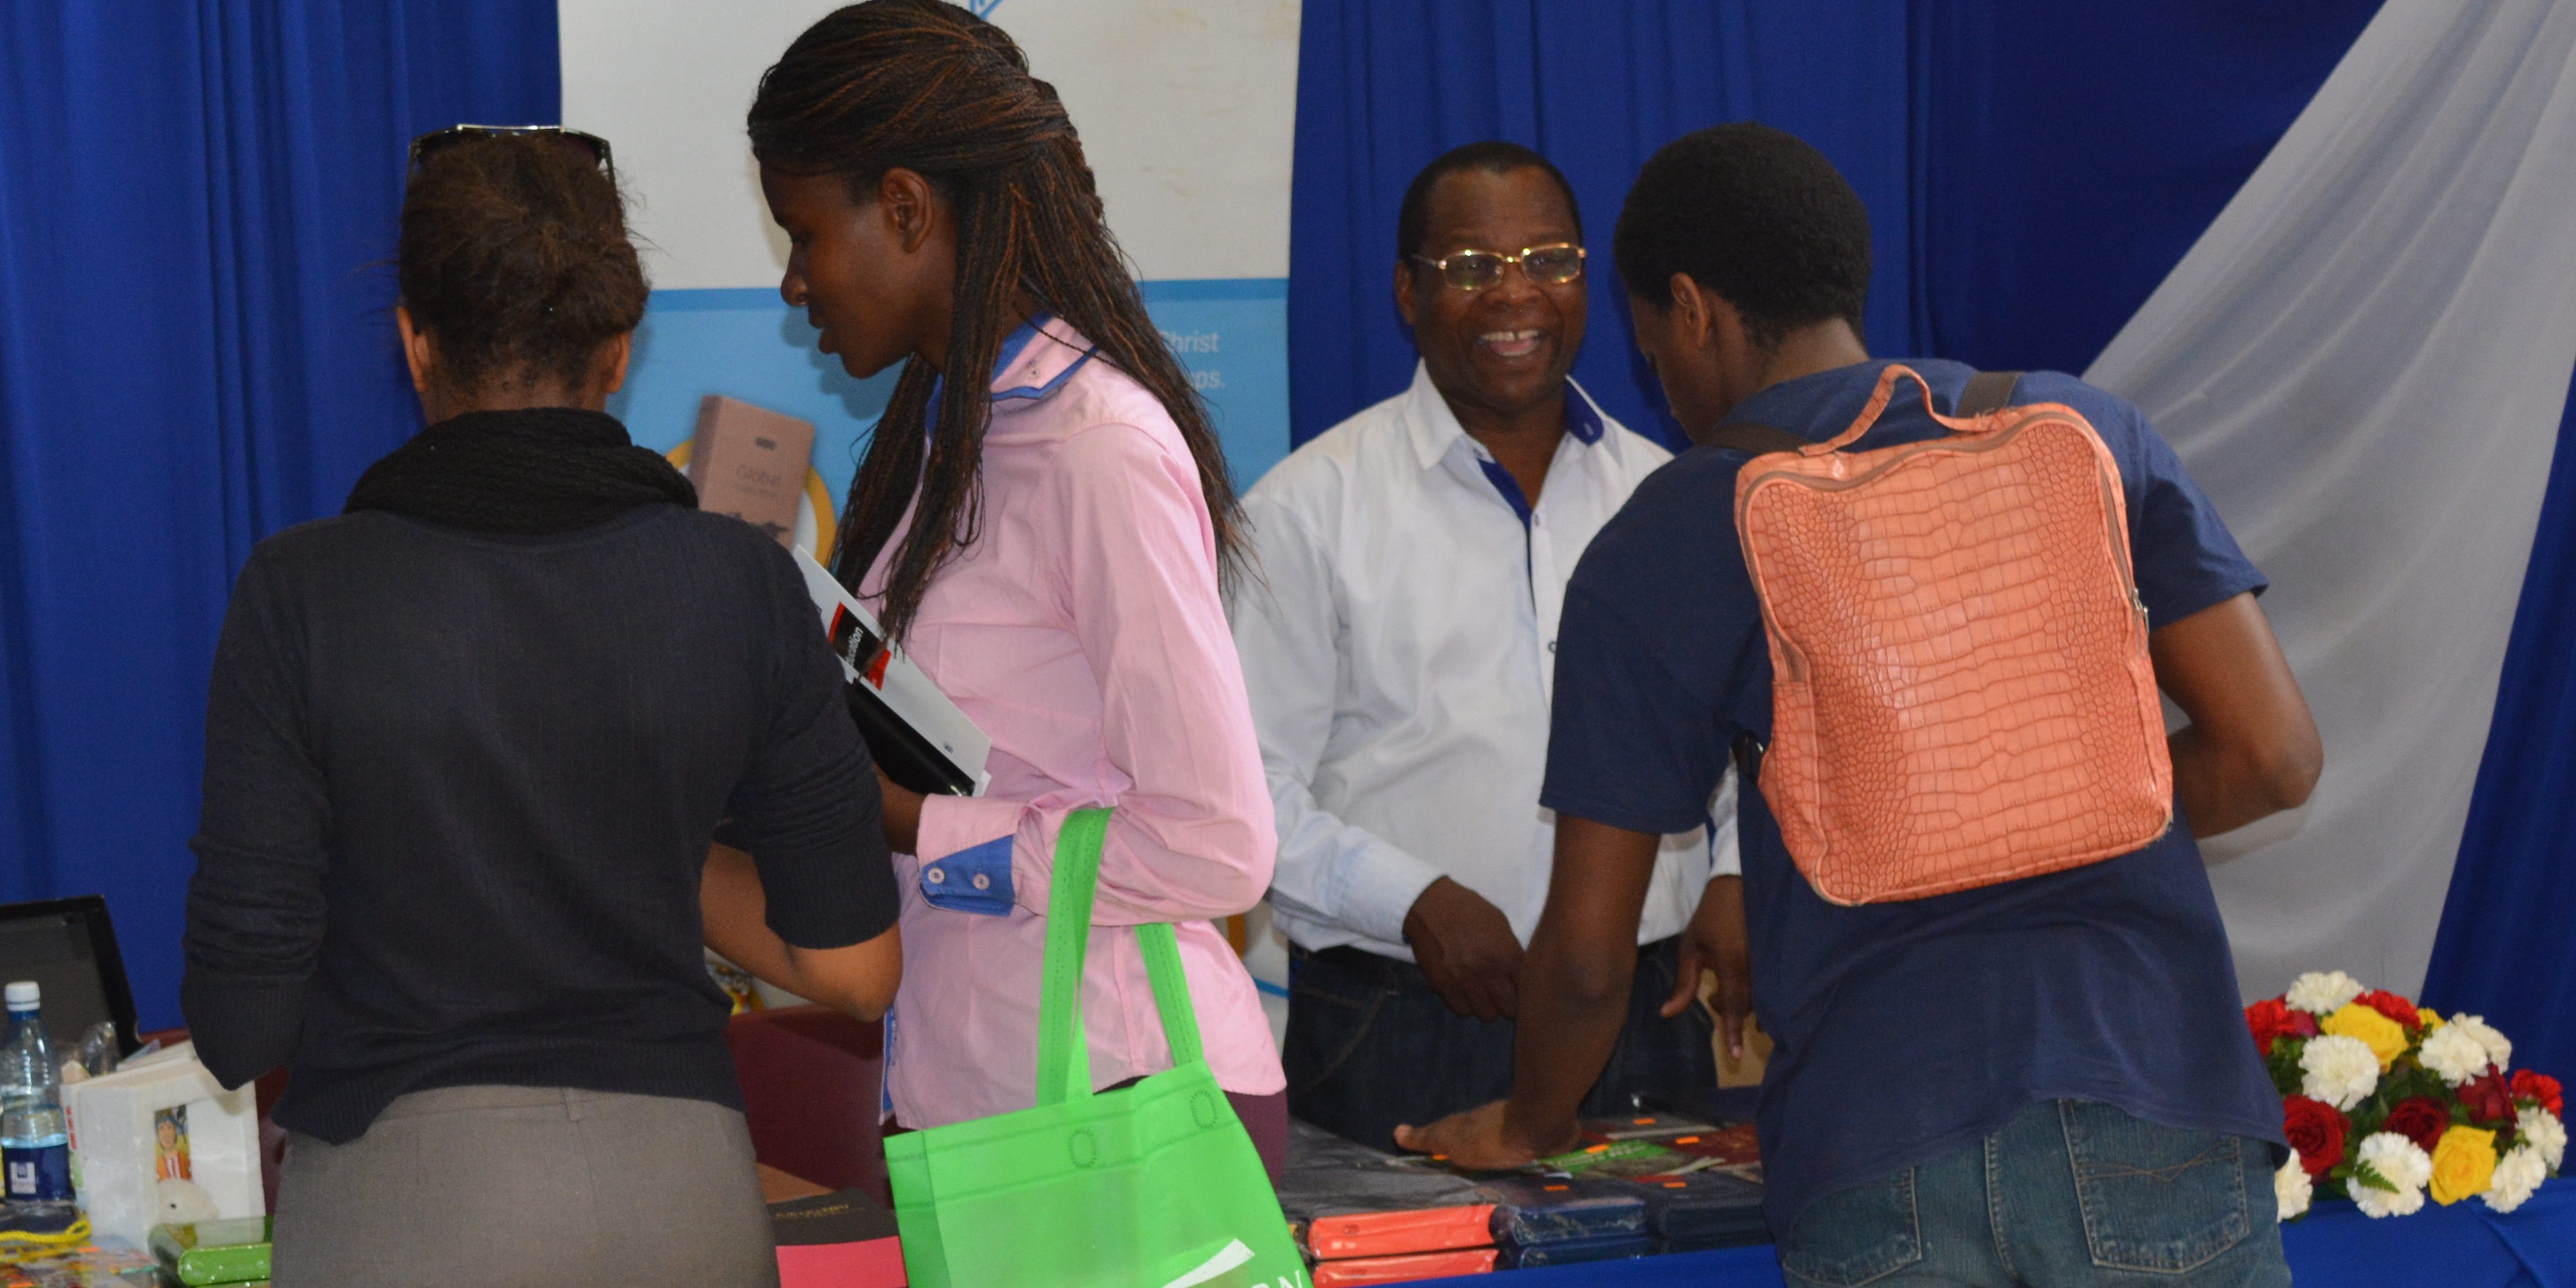 Mr. Charles Wakhaya the Sales Manager Exhibiting bibles to customer at the bible exhibition desk during the 2016 Nairobi International Book Fair